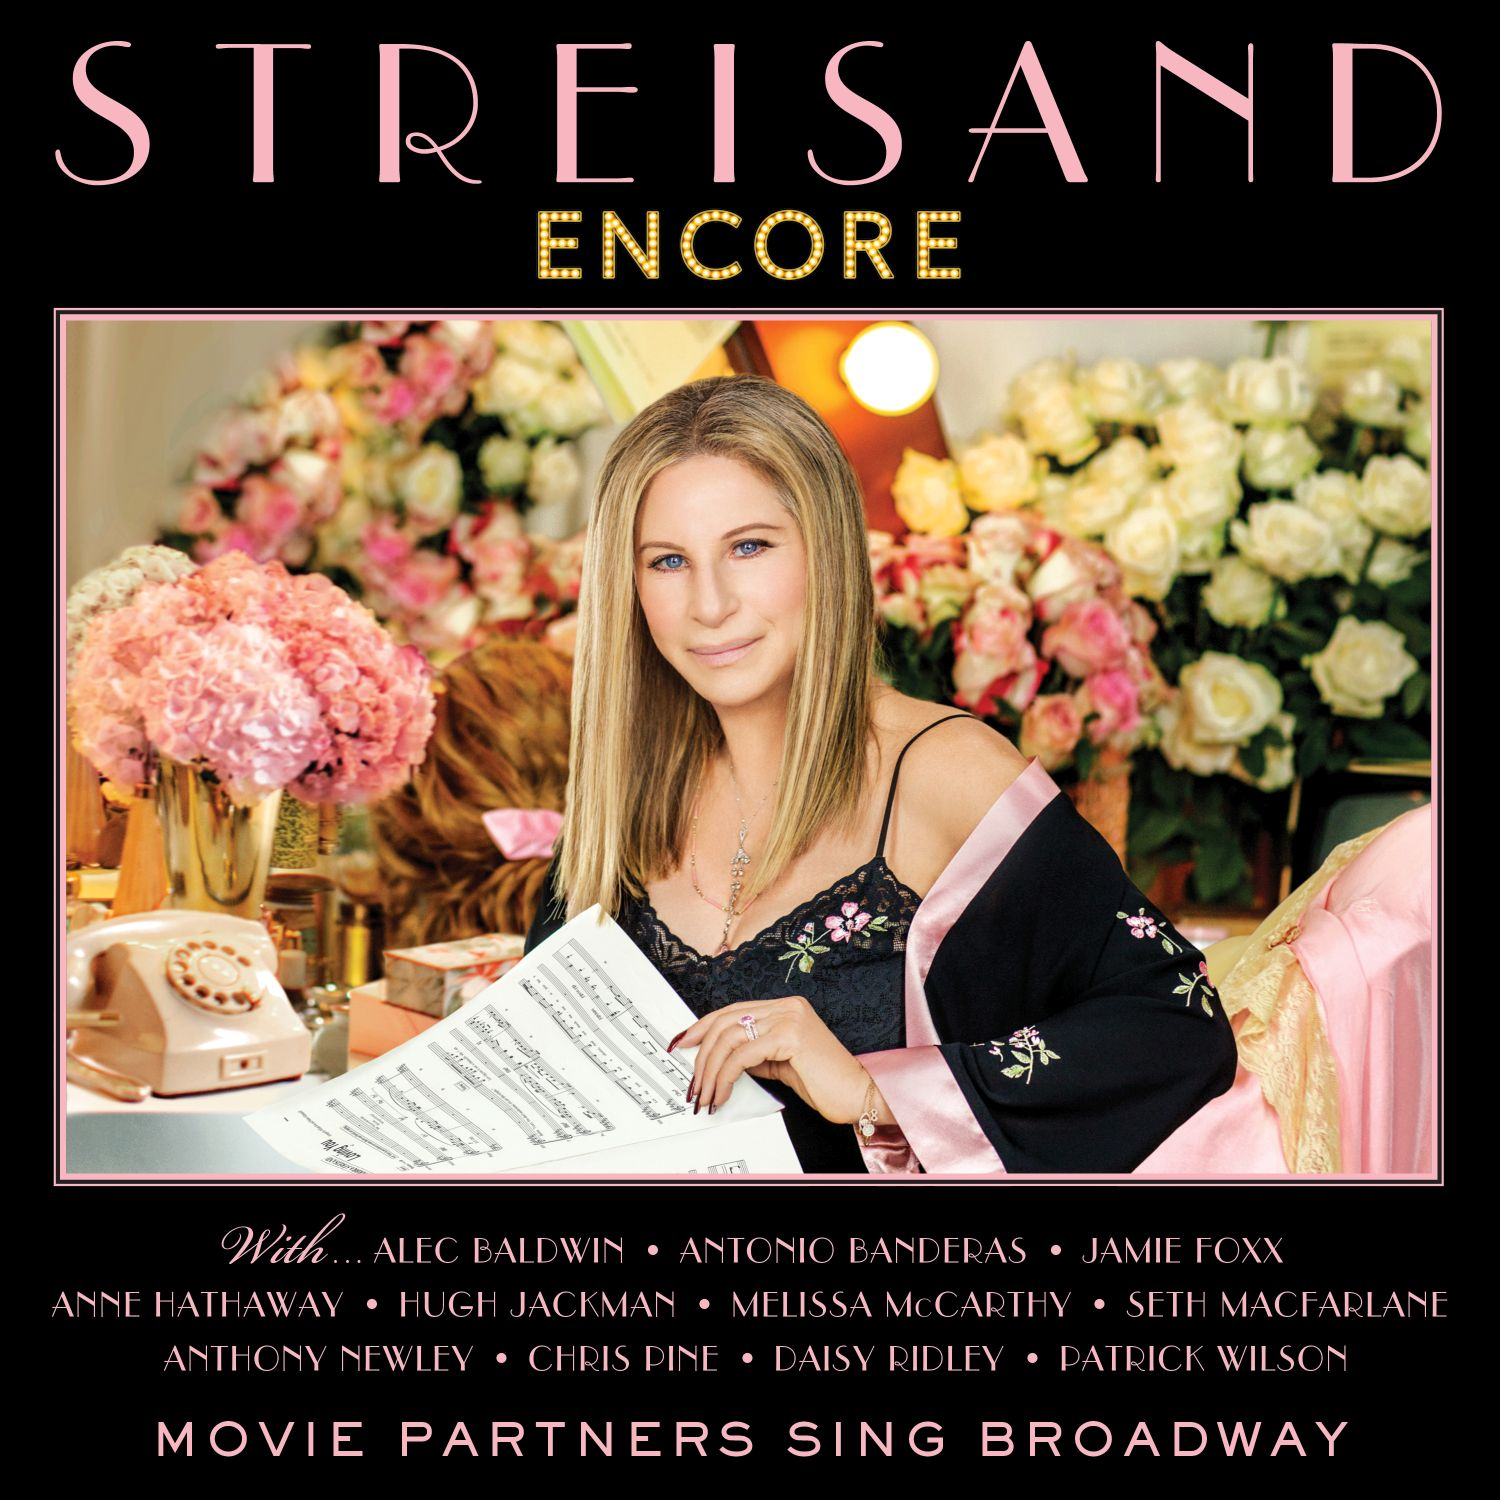 Barbra Streisand ENCORE Movie Partners Sing Broadway - album cover small